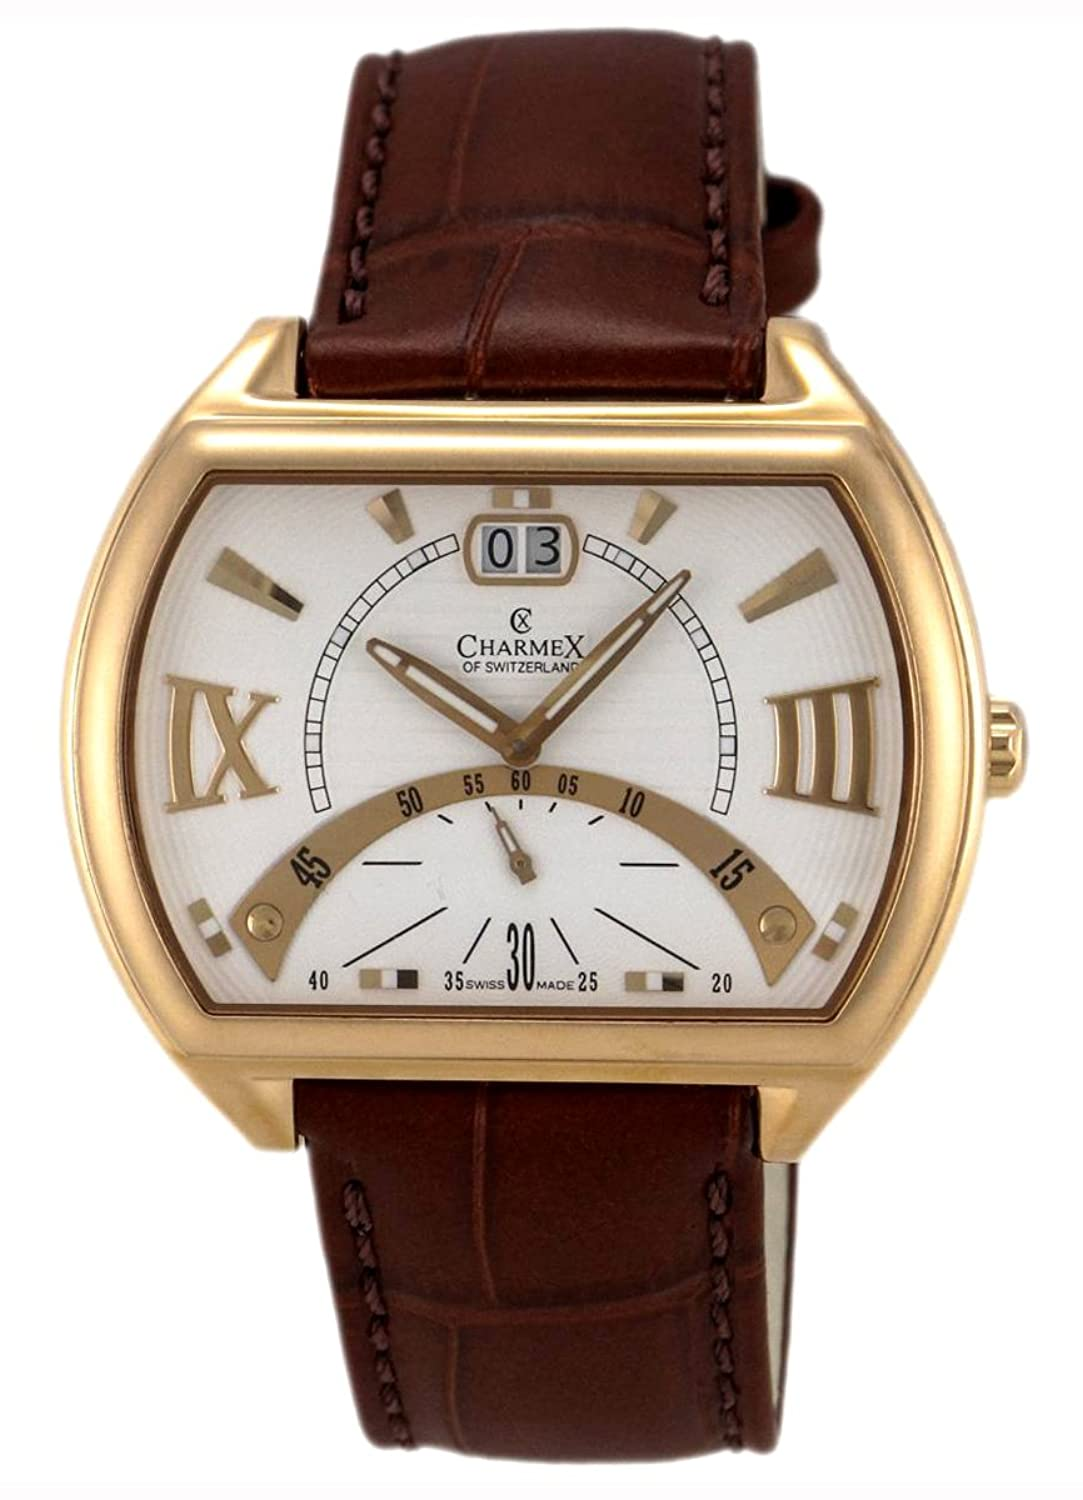 Charmex of Switzerland Monte Carlo Rose Gold Plated Steel Mens Watch White Dial 2330